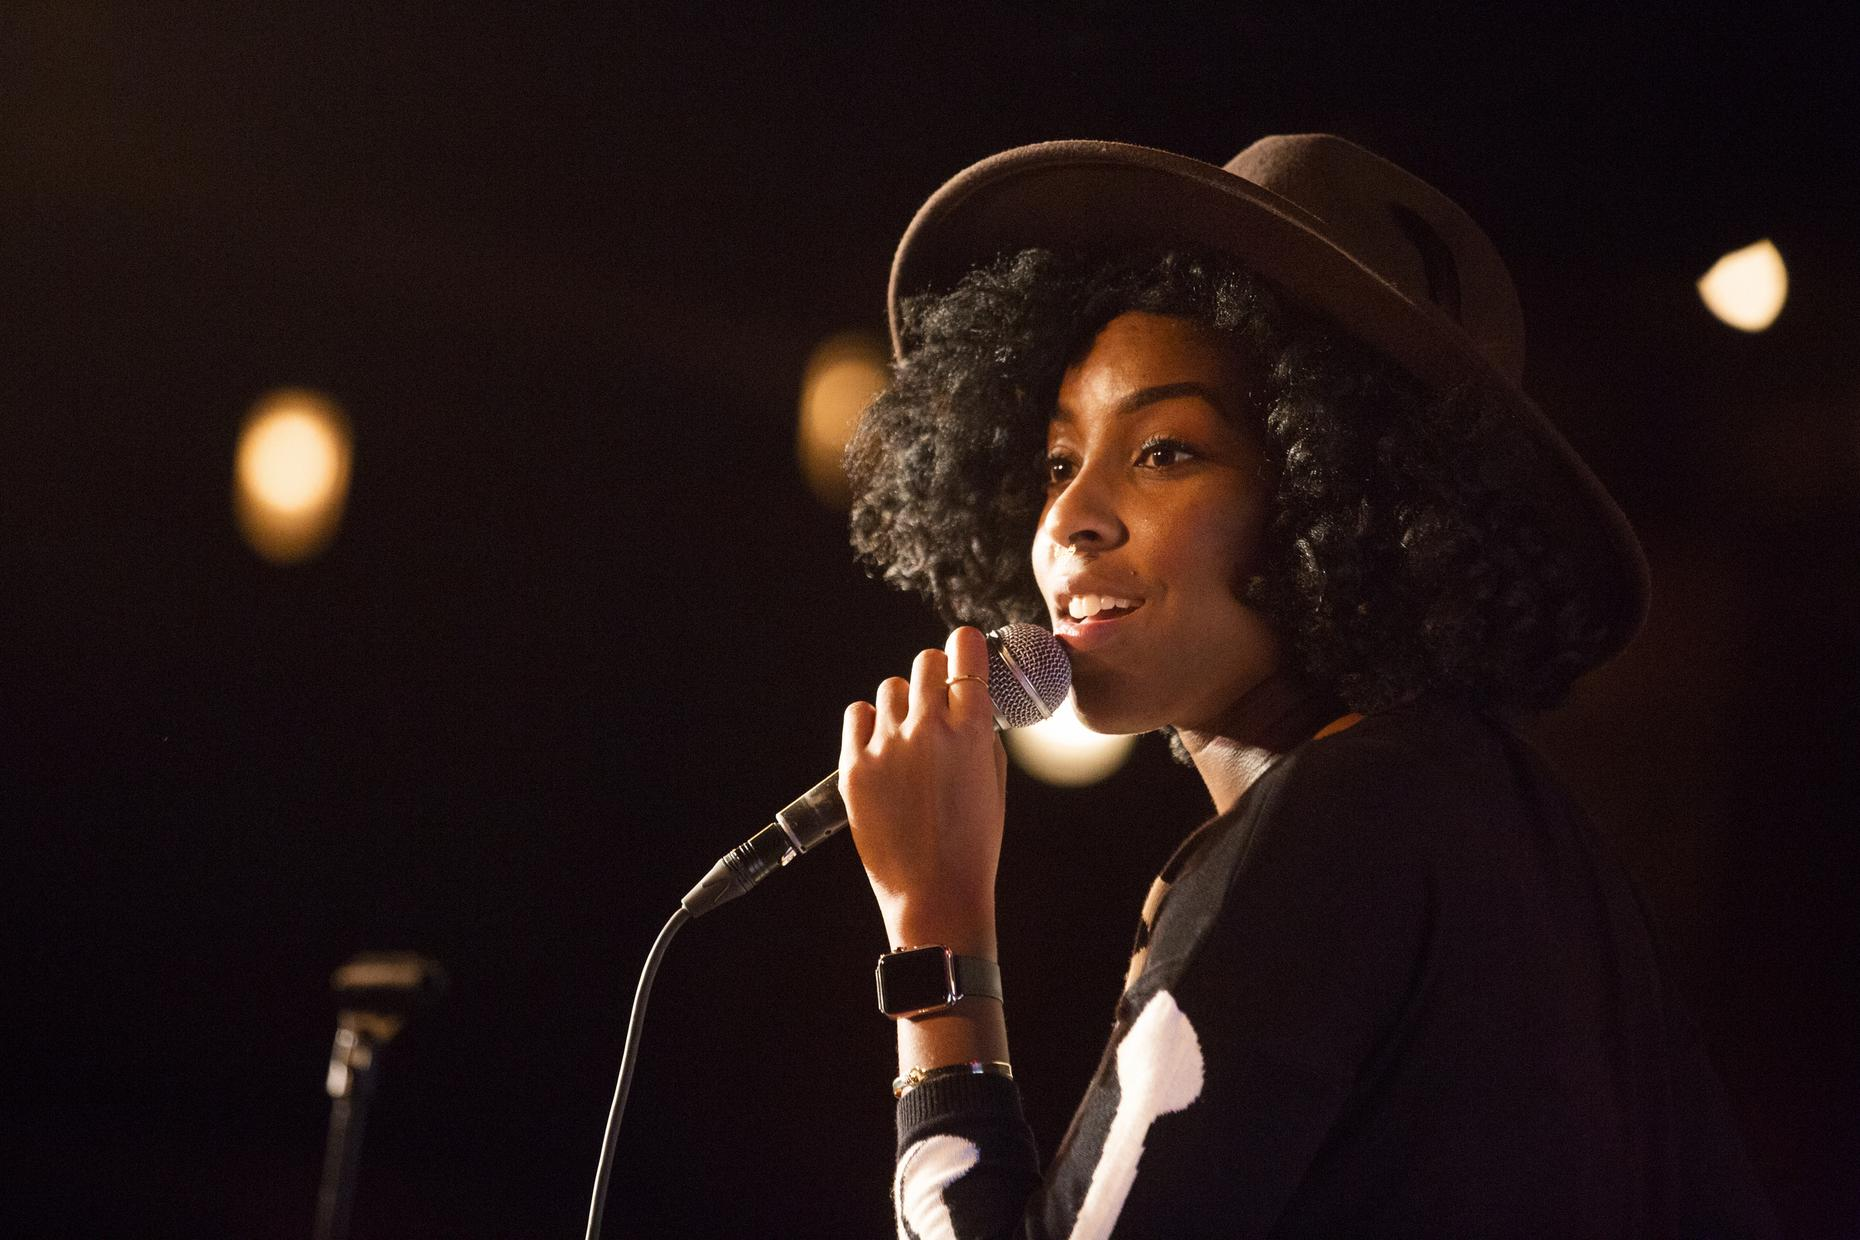 Jessica Williams is co-host of the '2 Dope Queens' podcast produced by WNYC Studions